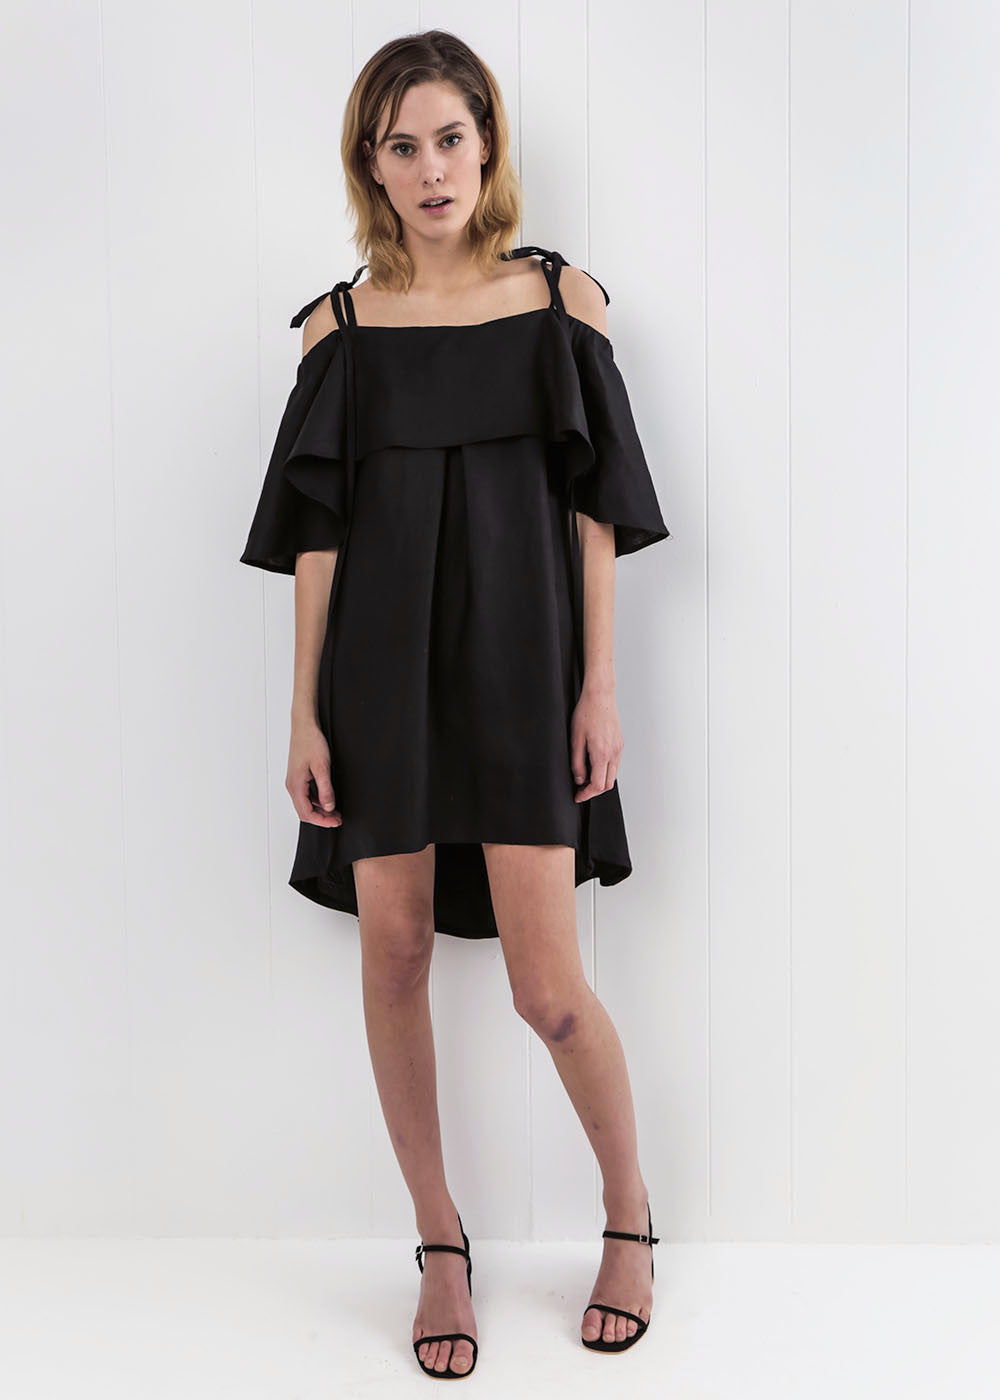 Eliza Faulkner Esme Dress — Shop sustainable fashion and slow fashion at New Classics Studios